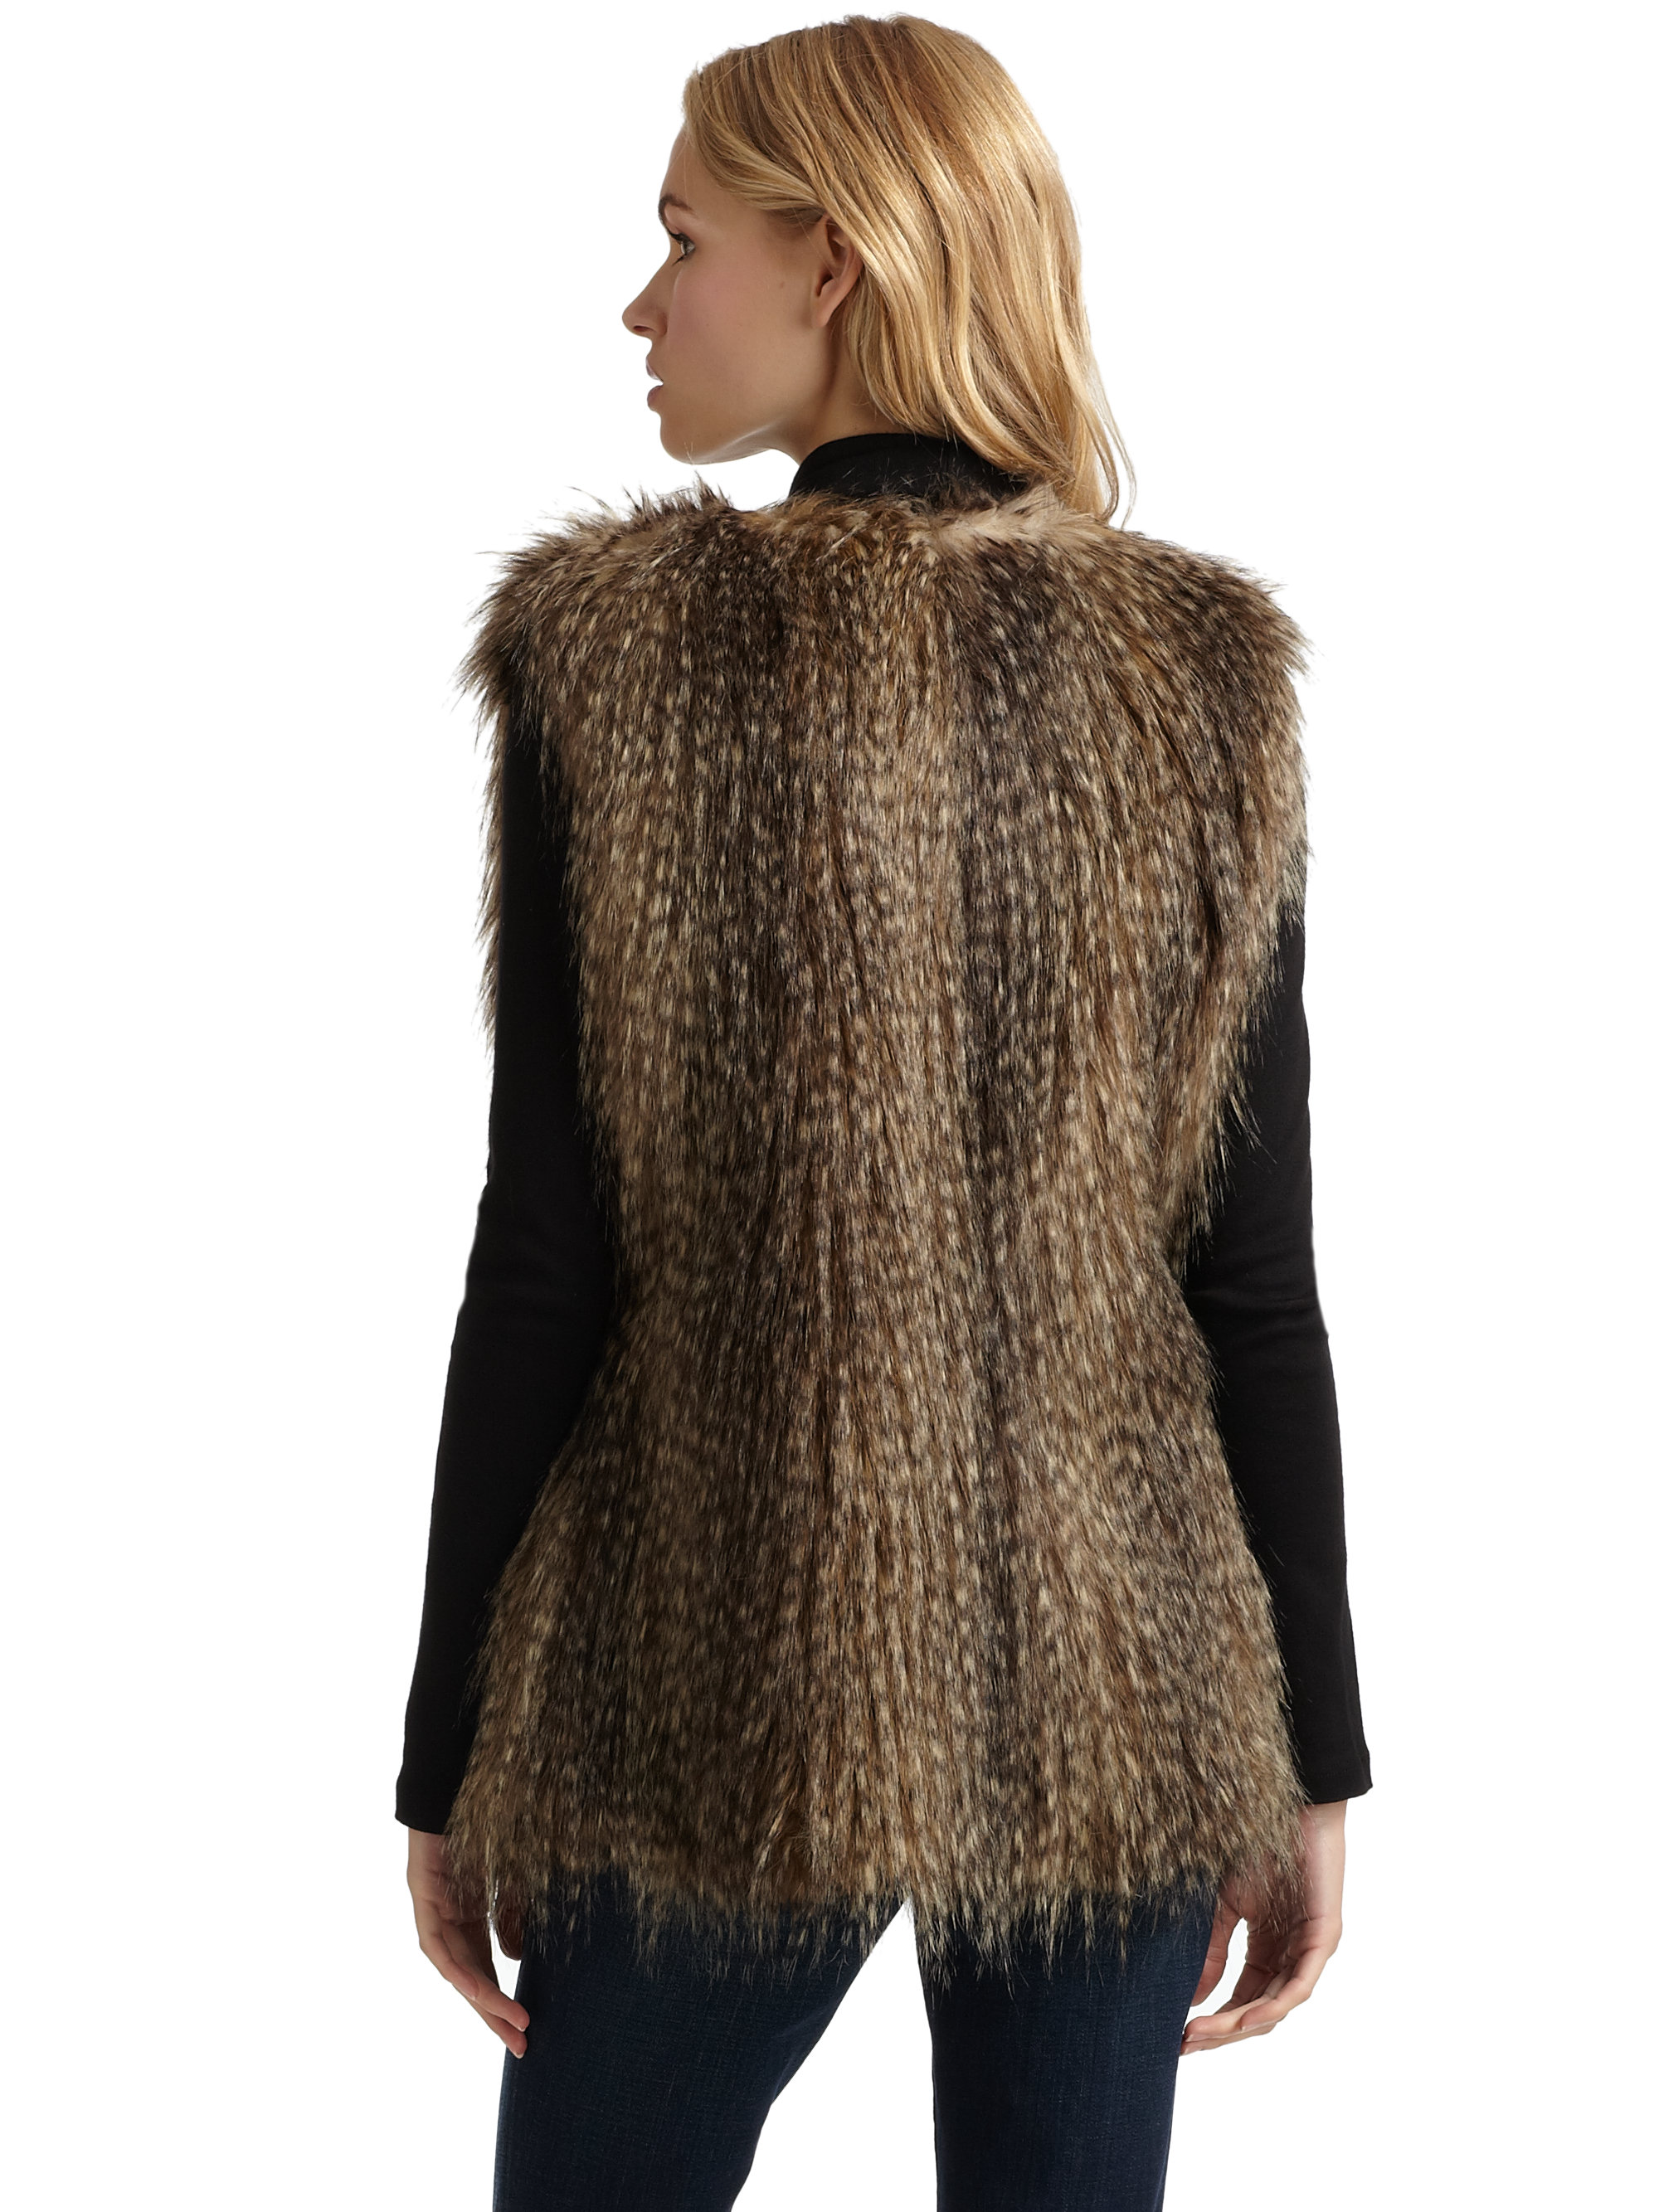 Find your Fox faux fur vest at sisk-profi.ga! Warm up with style in our sophisticated yet sporty Tan Fox Horizontal Faux Fur Vest in shades of Rust, Tan and Ivory. Luxe % fauc Fox fur is tipped for authenticity; narrow bands of sheared Black Mink add.